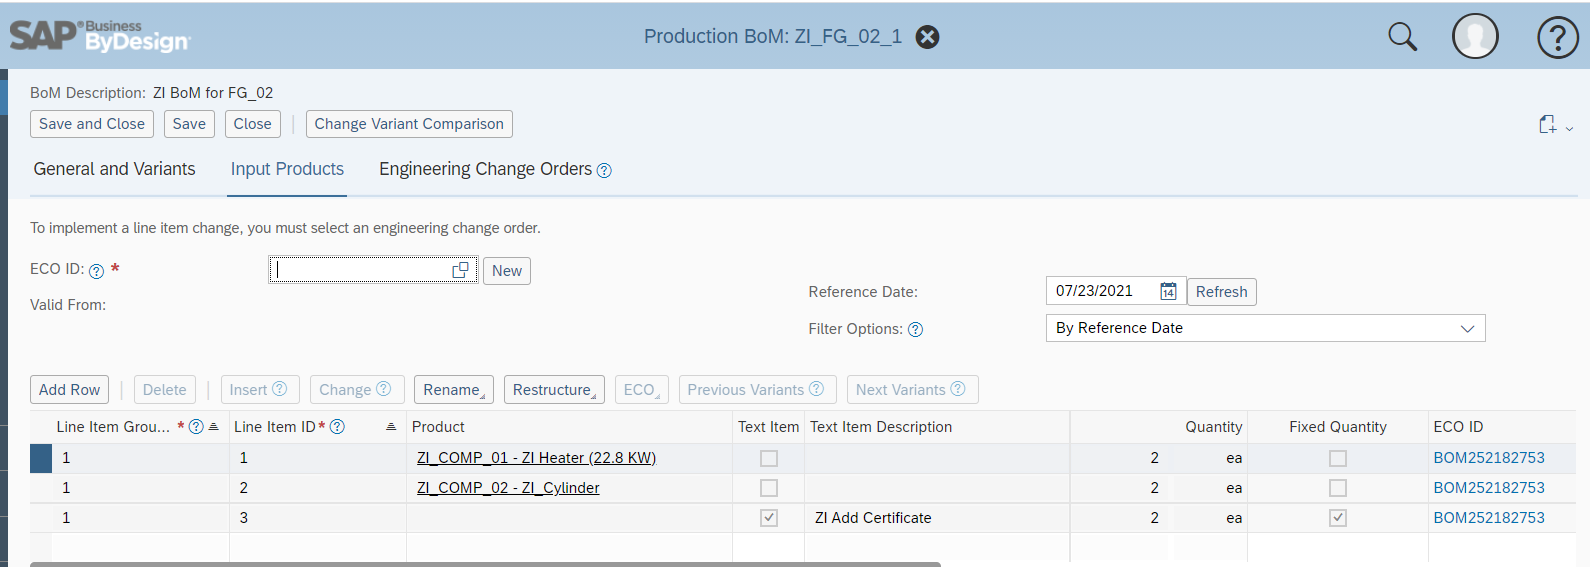 Production%20Bill%20of%20Material%20with%20a%20Text%20Item